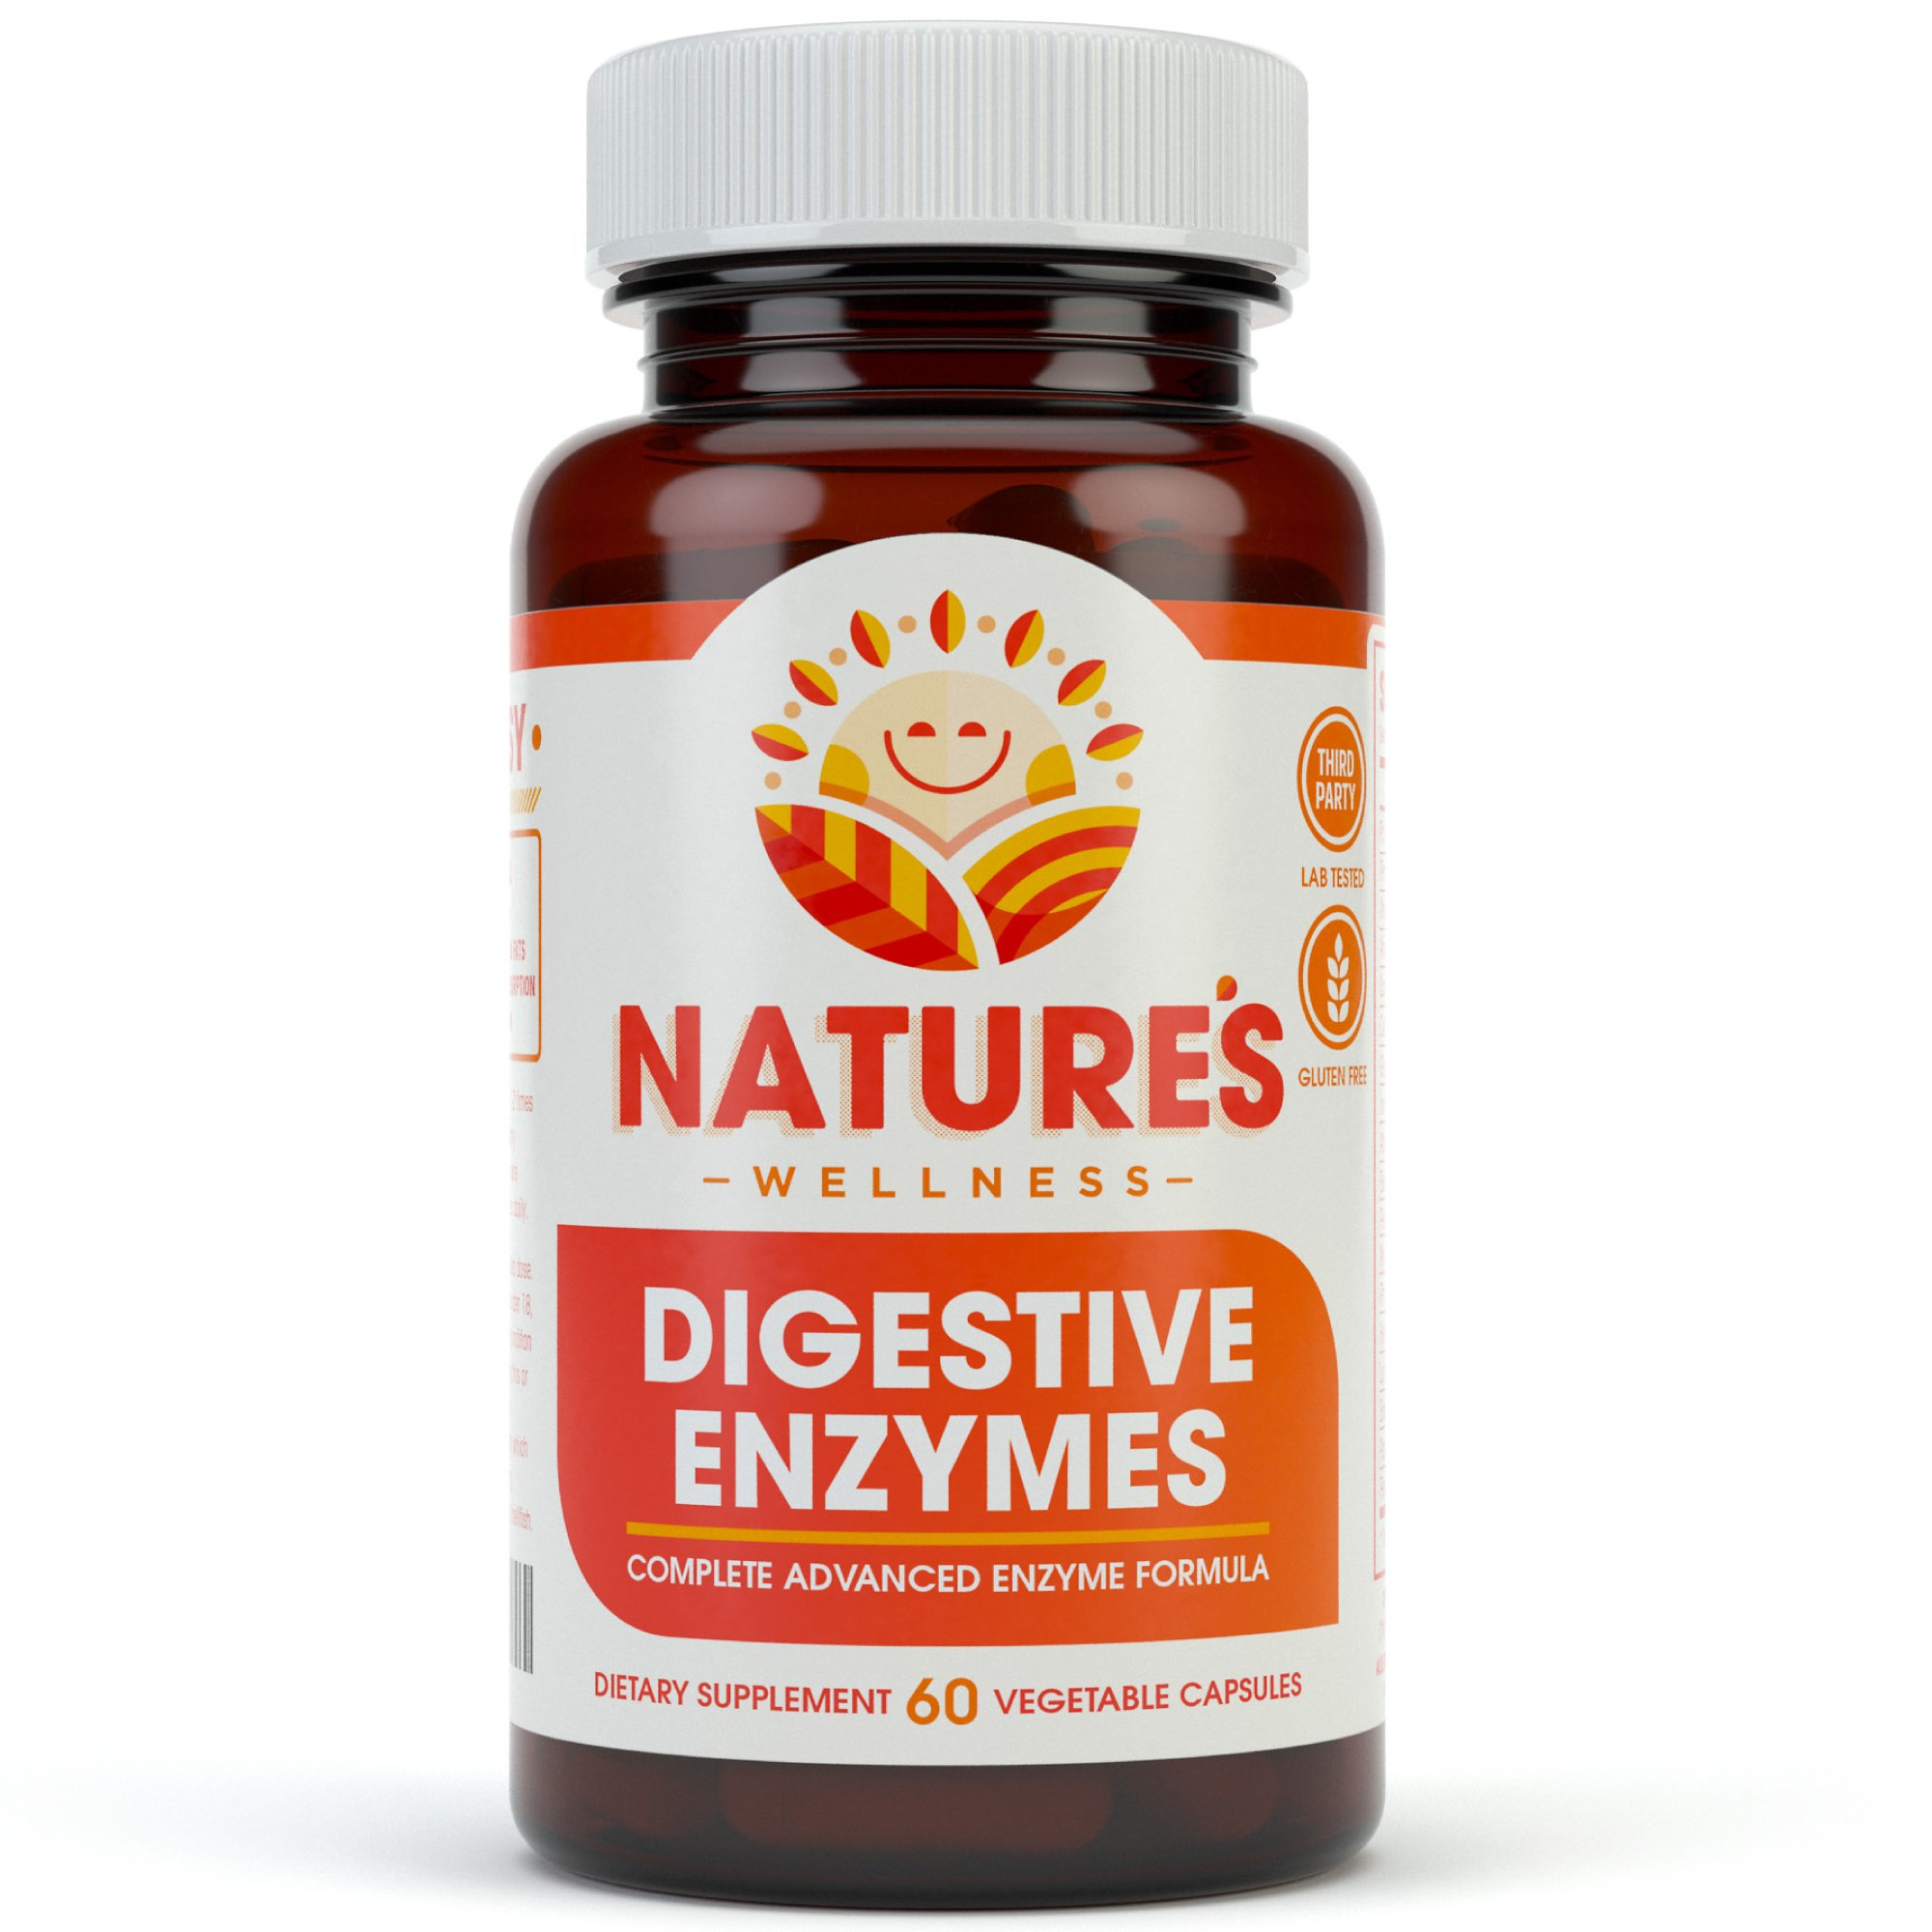 Digestive Enzymes Complete - Advanced Multi Enzyme Supplement for Better Digestion & Absorption. Help Gas Relief, Discomfort, Bloating, IBS, Gluten & Lactose Intolerance by Natures Wellness (Image #1)